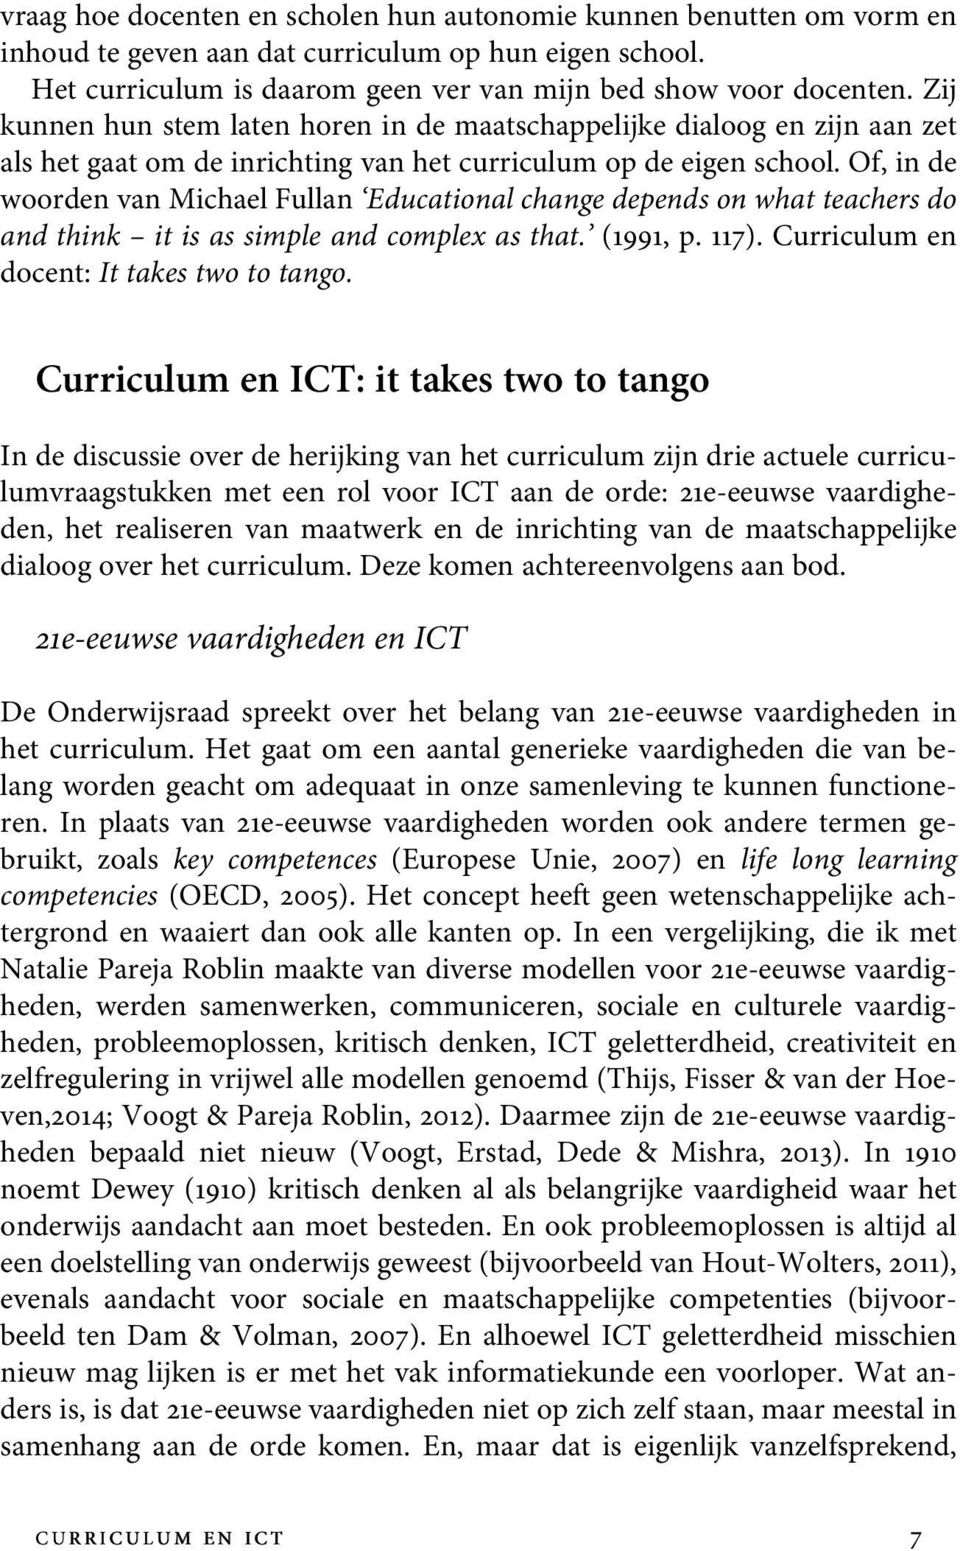 Of, in de woorden van Michael Fullan Educational change depends on what teachers do and think it is as simple and complex as that. (1991, p. 117). Curriculum en docent:it takestwoto tango.